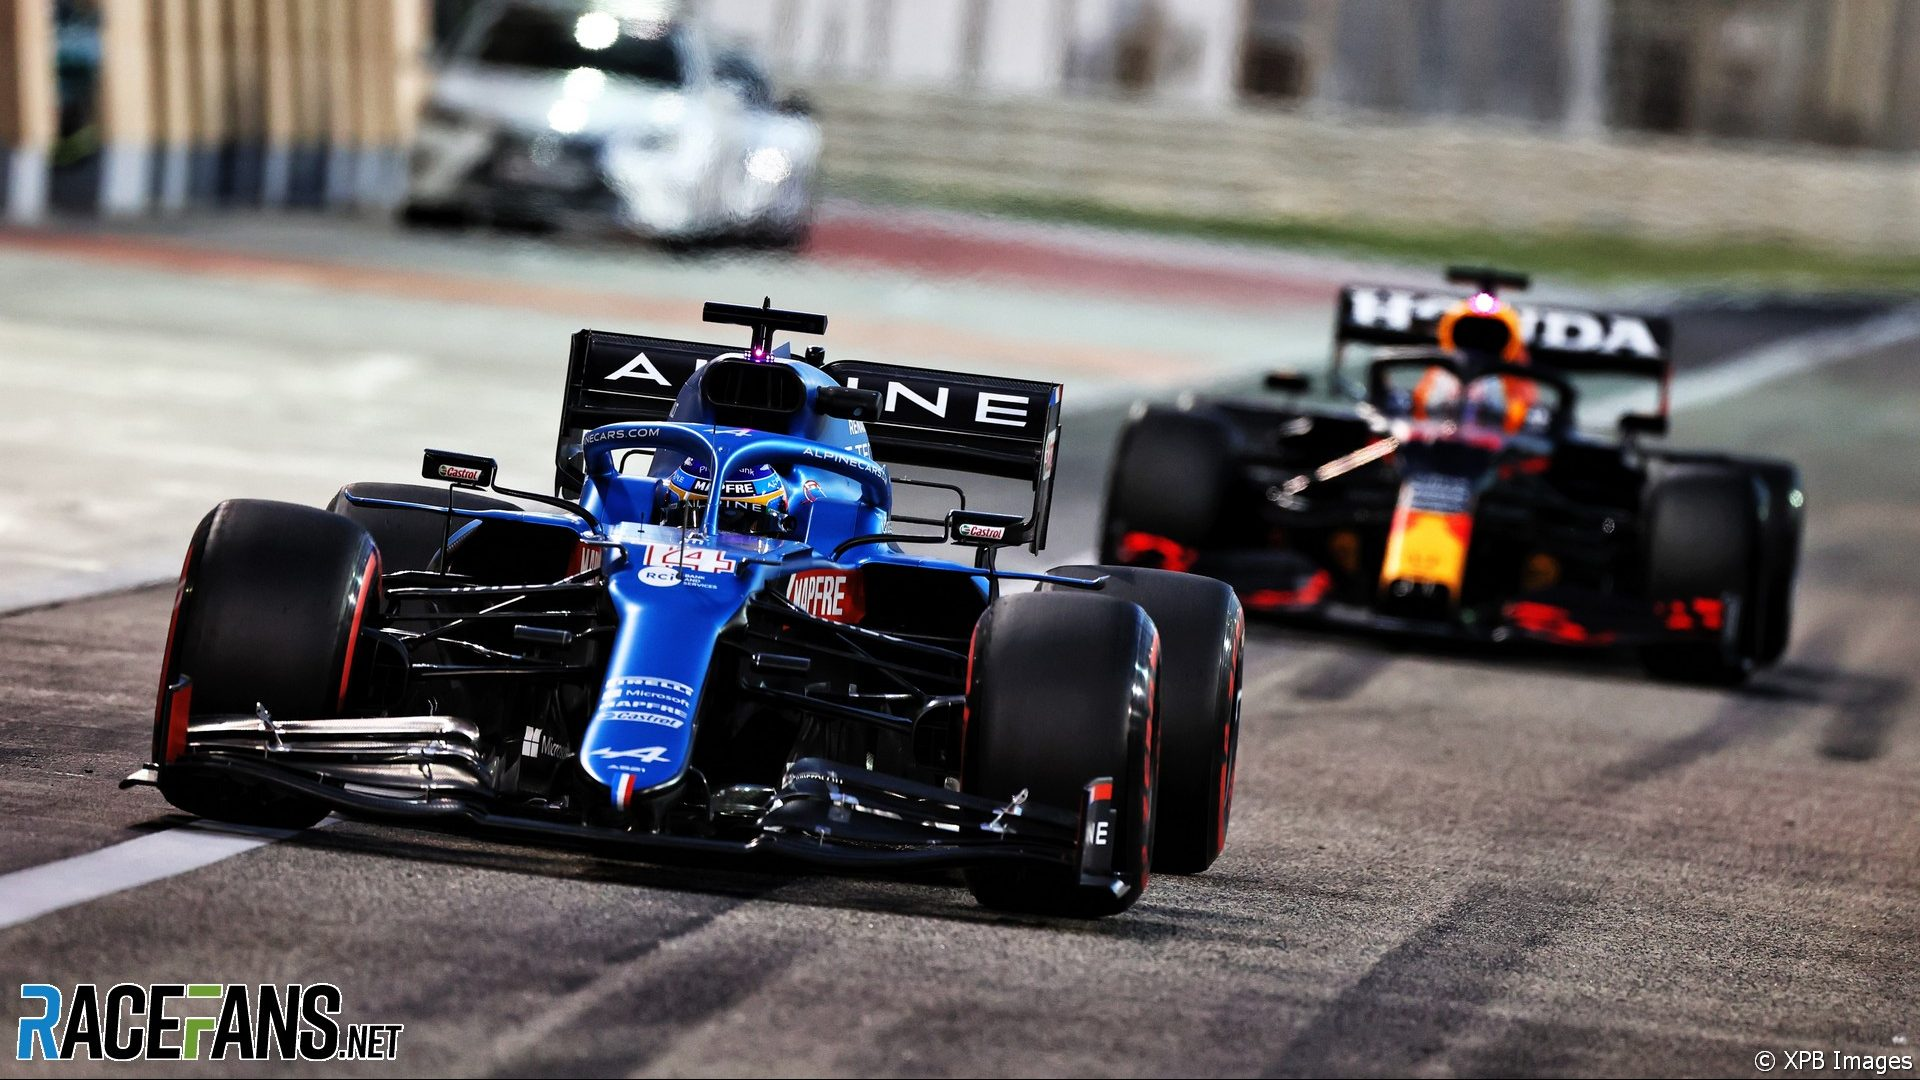 Fernando Alonso, Alpine, Bahrain International Circuit, 2021